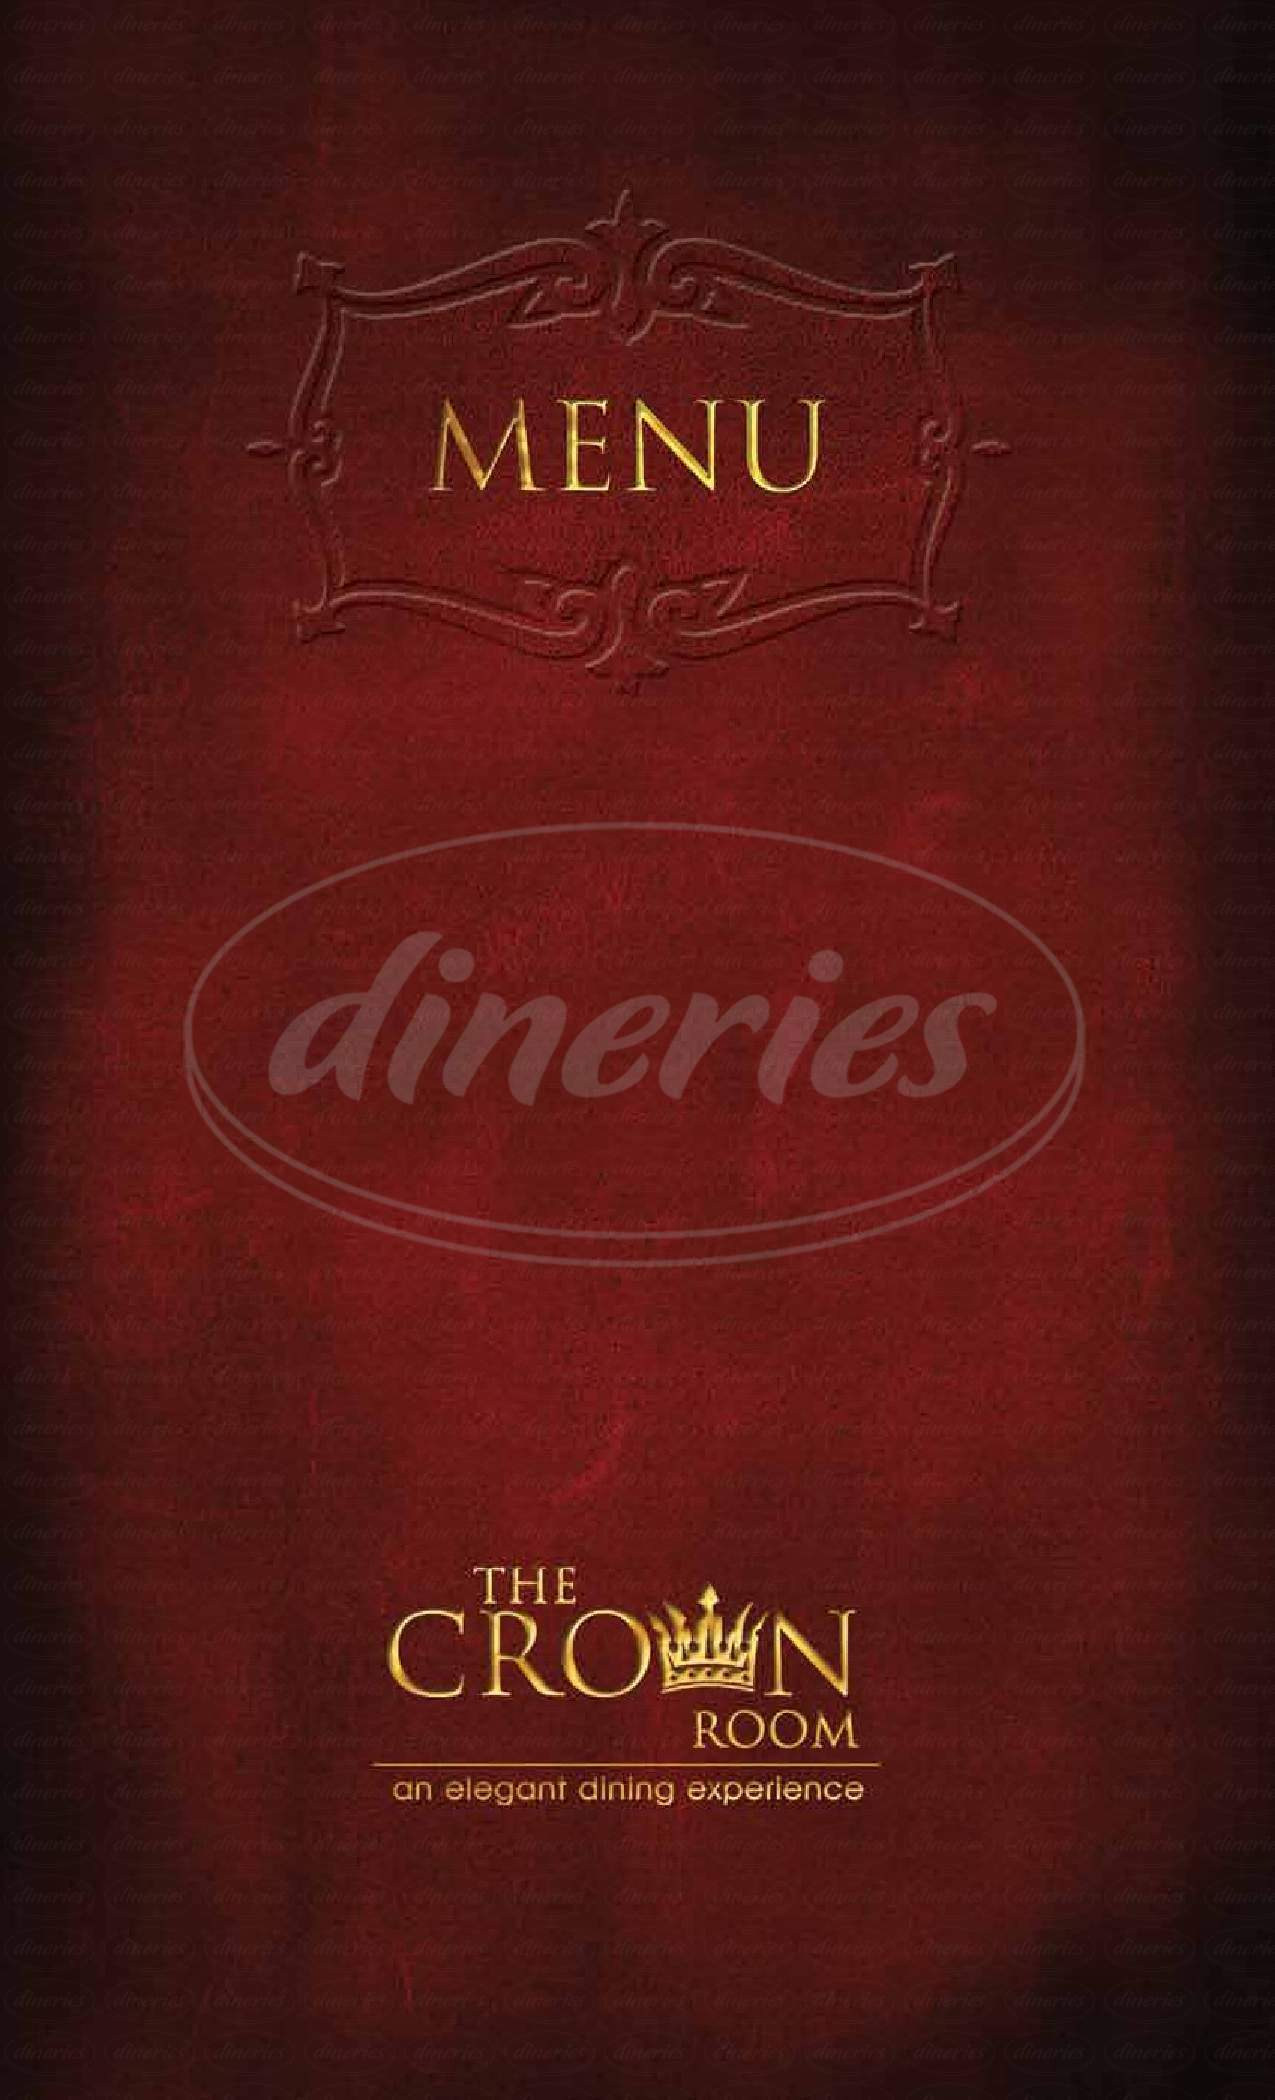 menu for The Crown Room